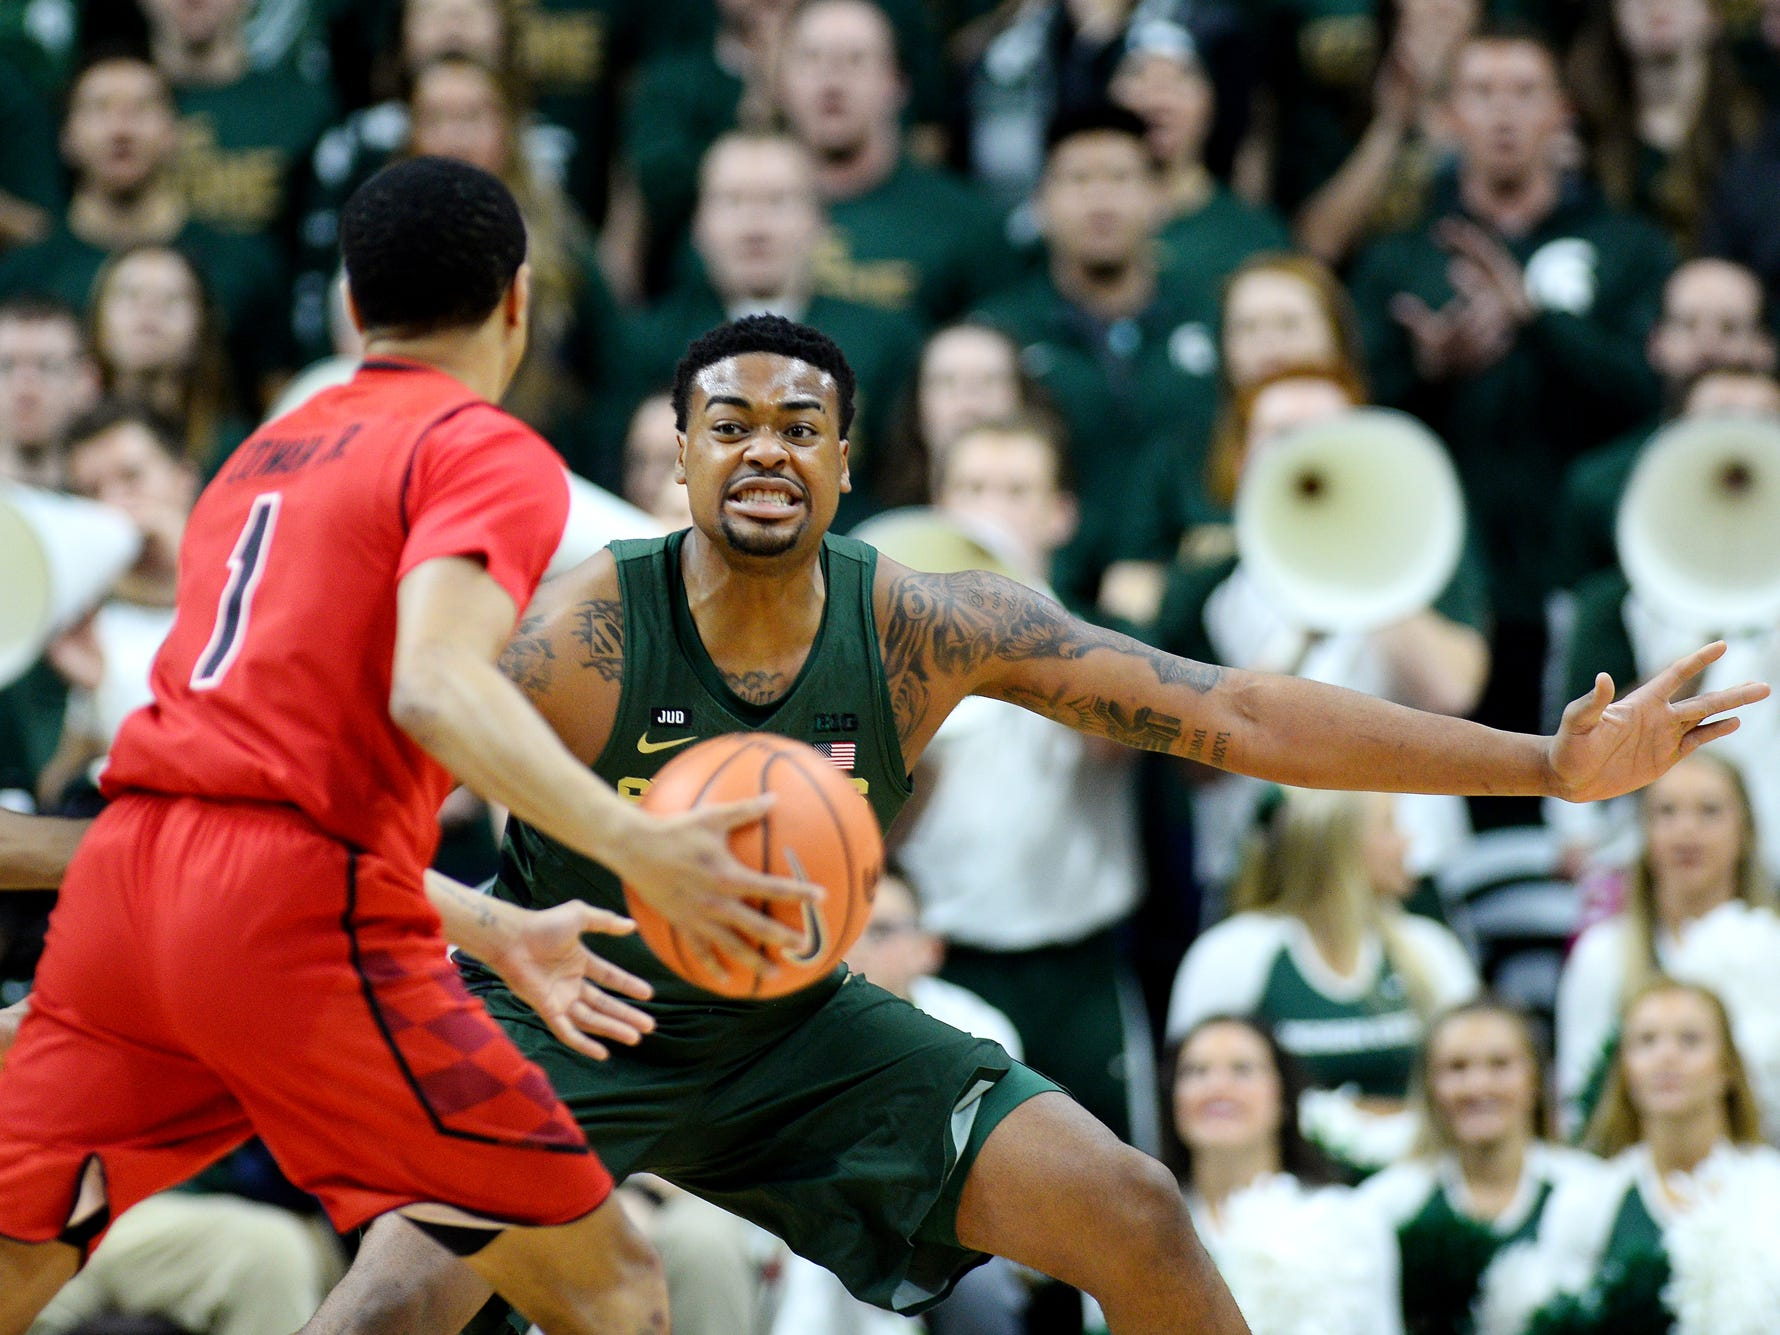 Michigan State's Nick Ward, right, defends as Maryland's Anthony Cowan Jr. looks to pass during the first half on Thursday, Jan. 4, 2018, at the Breslin Center in East Lansing.